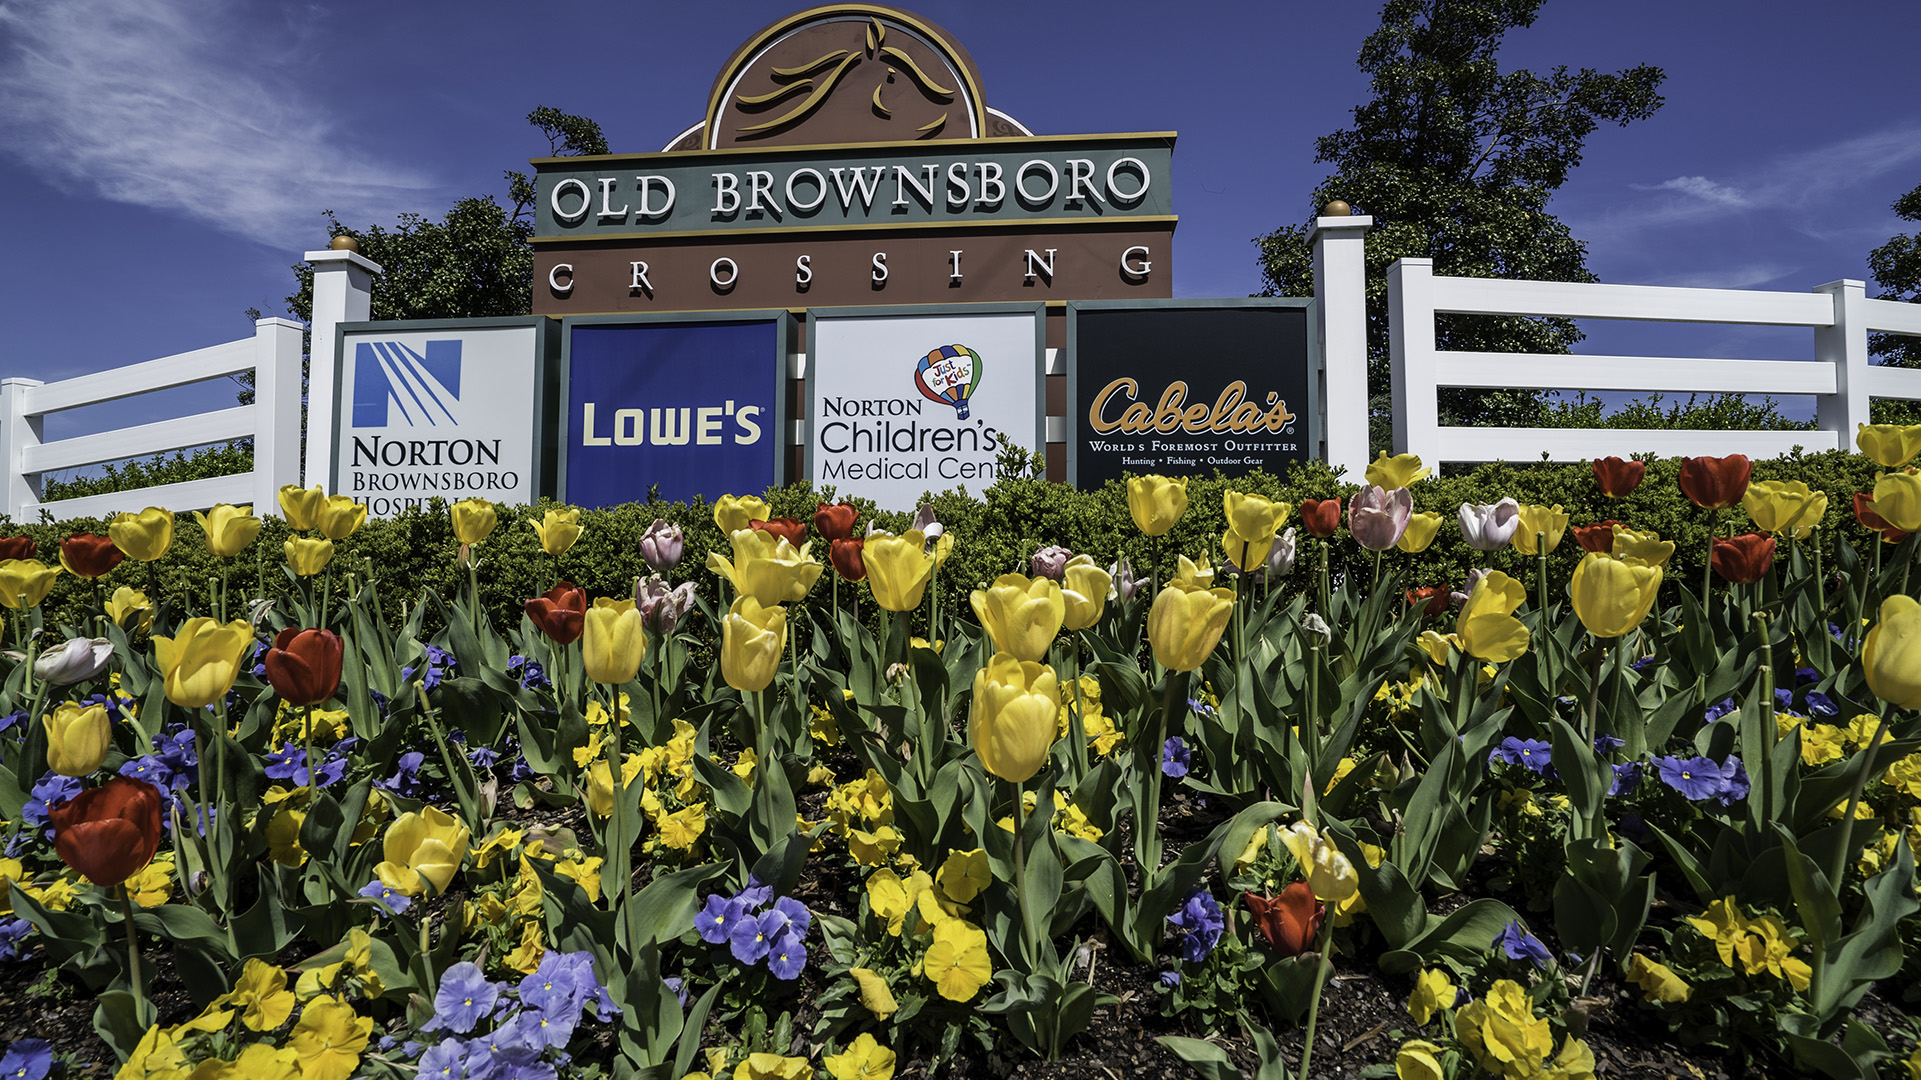 Earthbound_Brownsboro-Crossing_Tulips